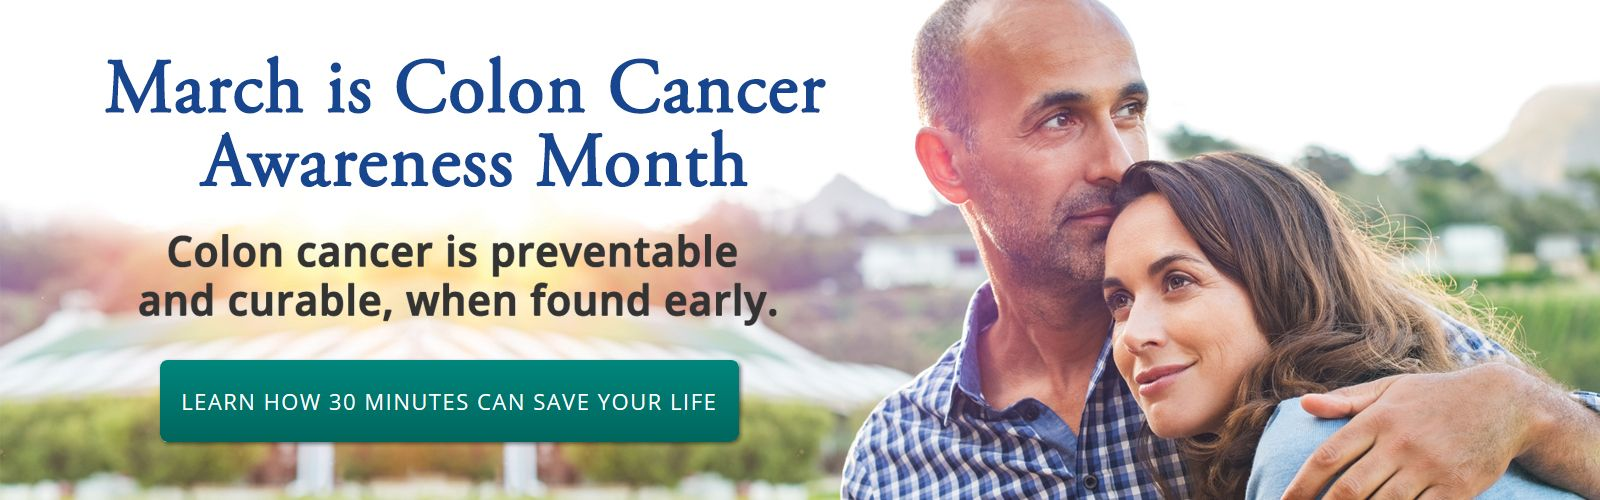 PA-GI-Colon-Cancer-Awareness-Month-Banner.jpg